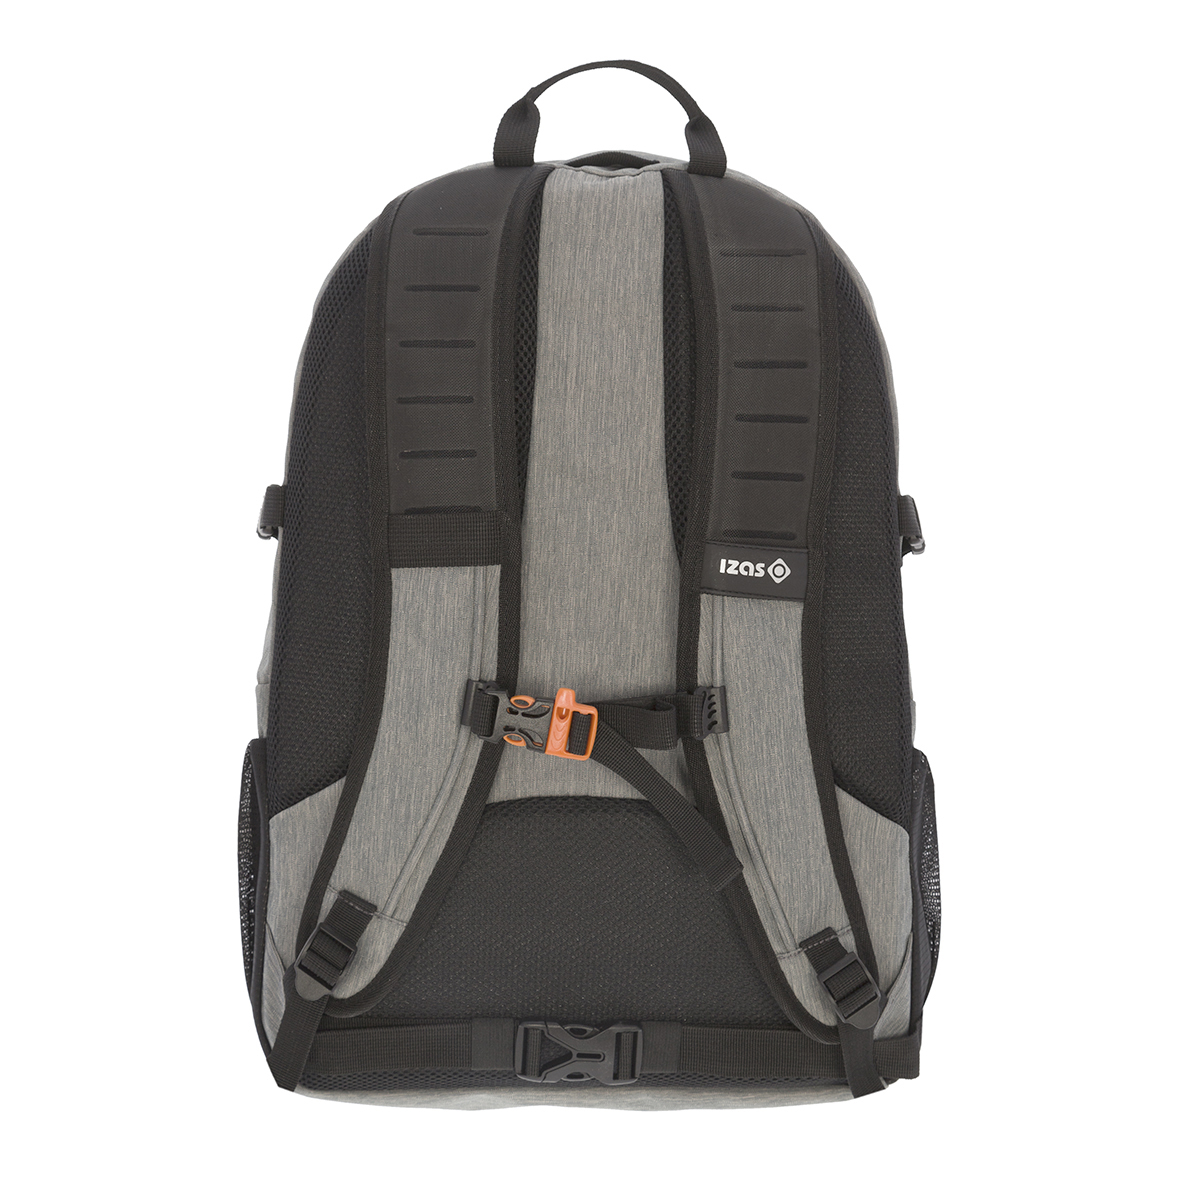 UNISEX'S SANFORD BACKPACK GREY